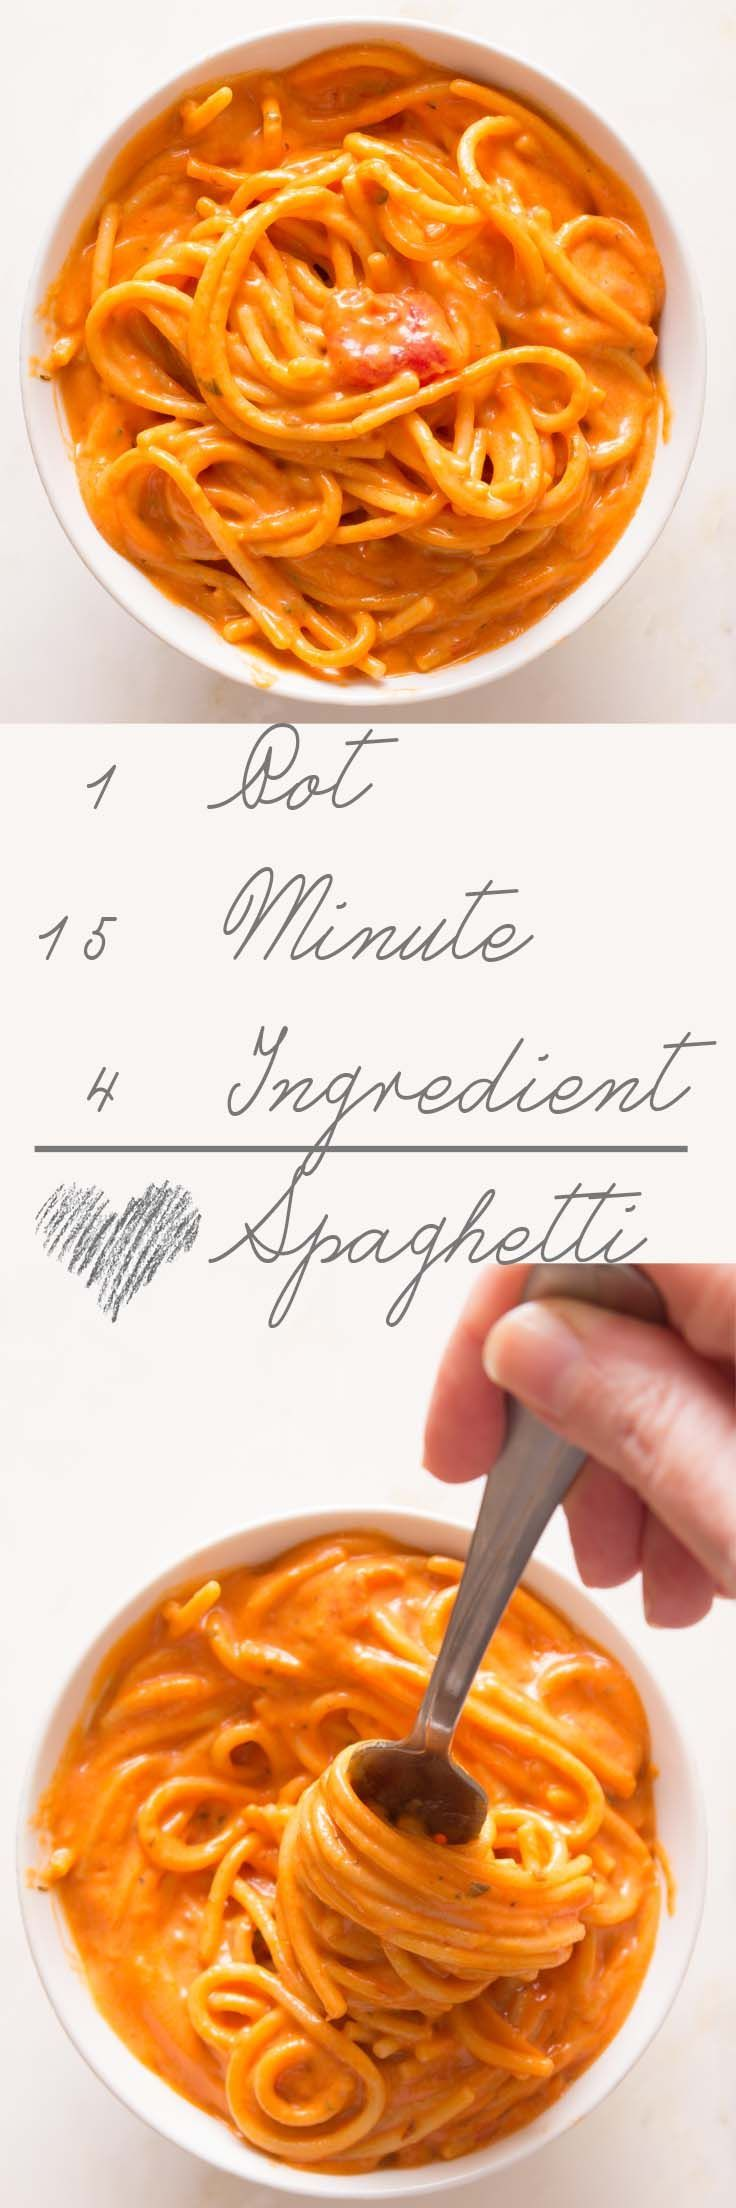 One Pot Quick and Easy Spaghetti - ready in 15 minutes!